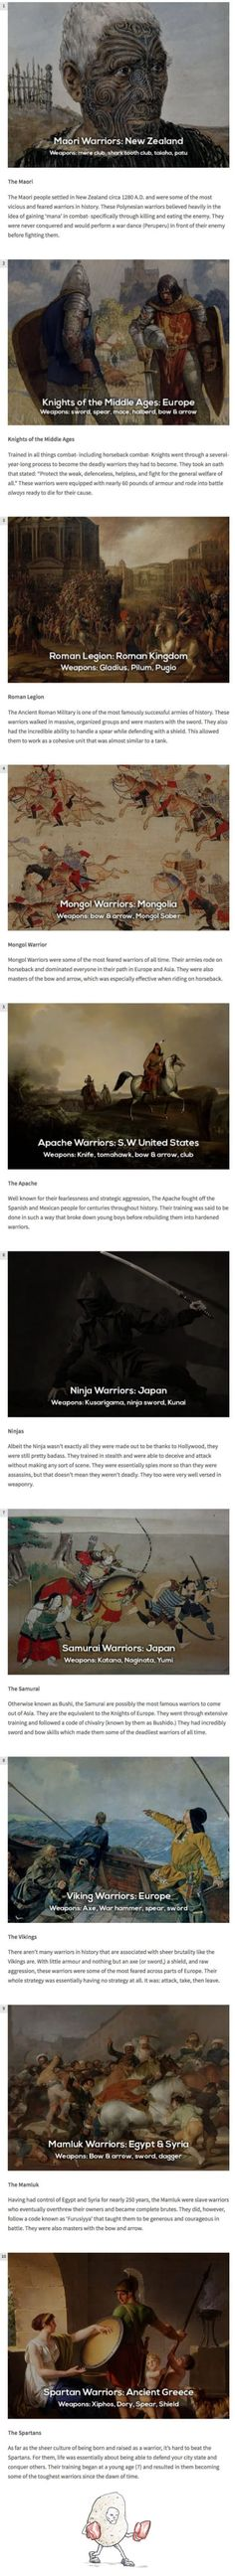 Deadly ancient warriors from around the world